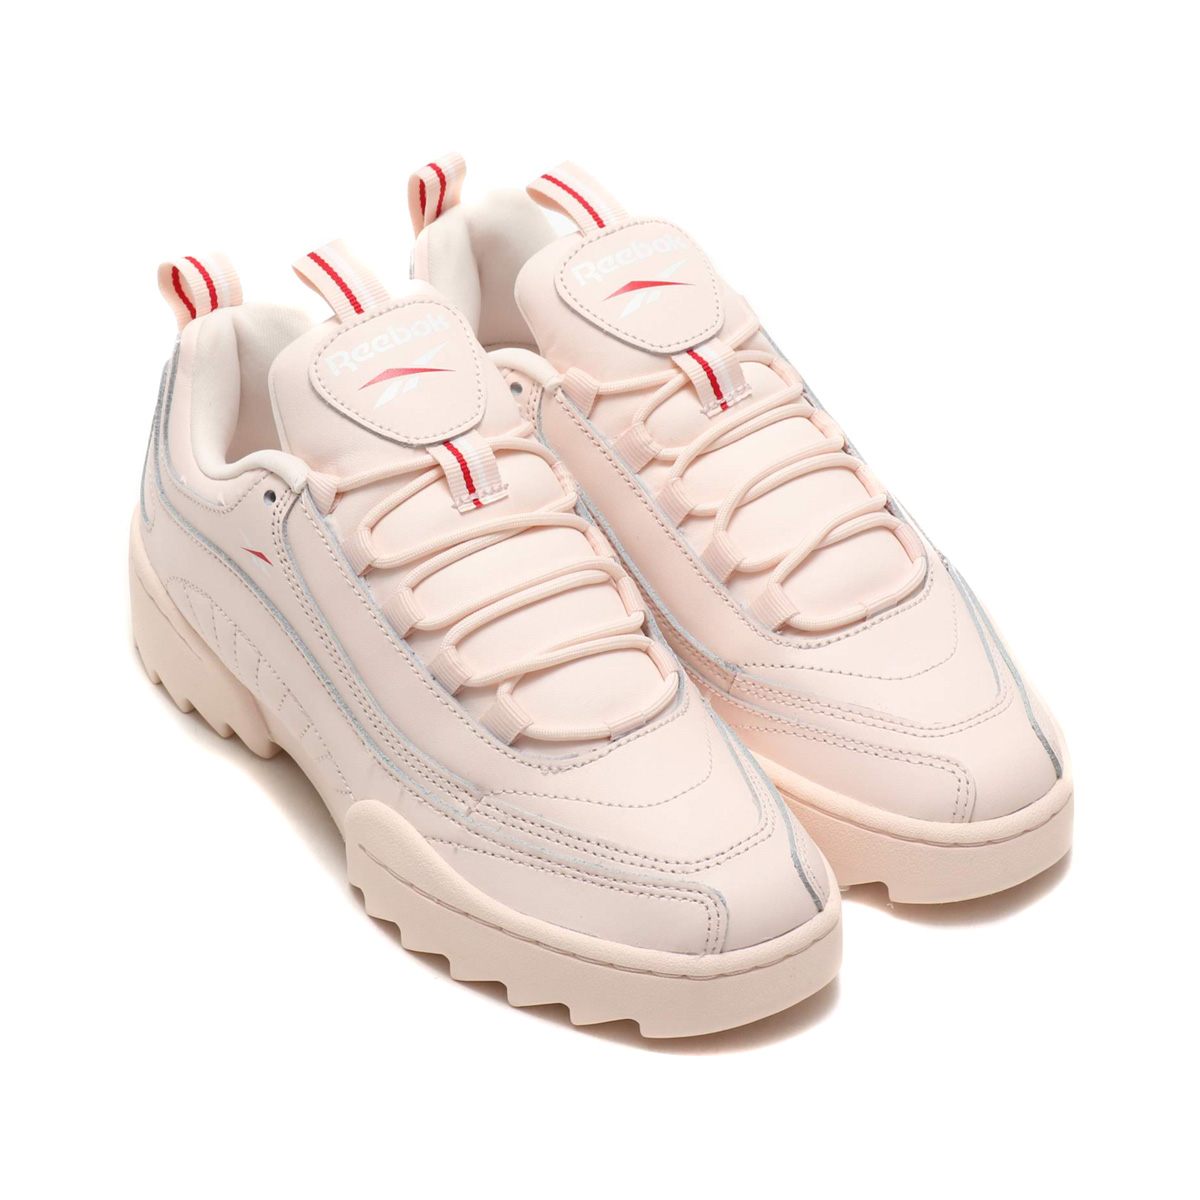 121f4ae0e6a Reebok RIVYX RIPPLE (リーボックリヴィクスリップル) PALE PINK WHITE EXCELLENT RED 18FW-S